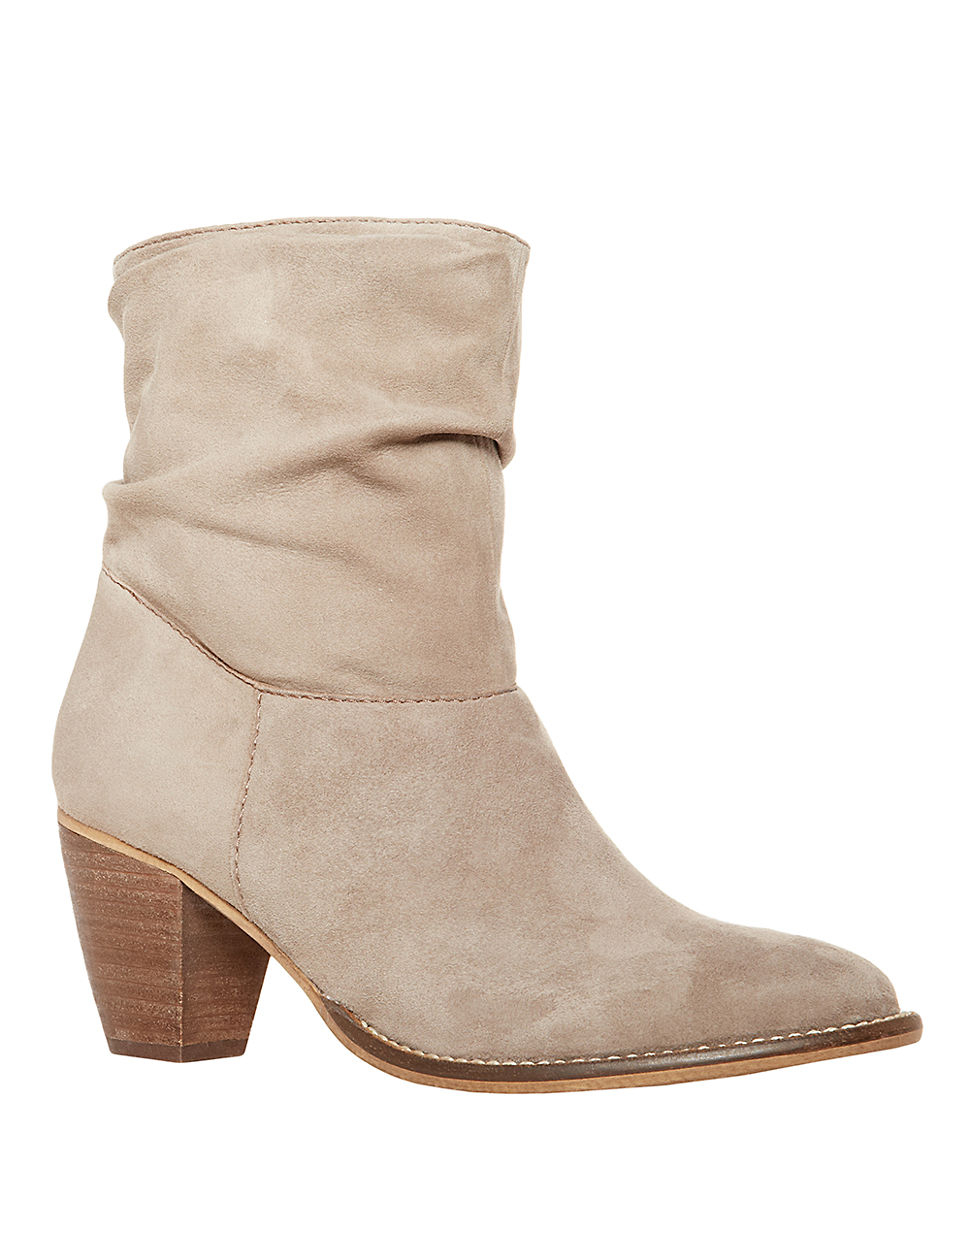 steven by steve madden welded suede high heel boots in